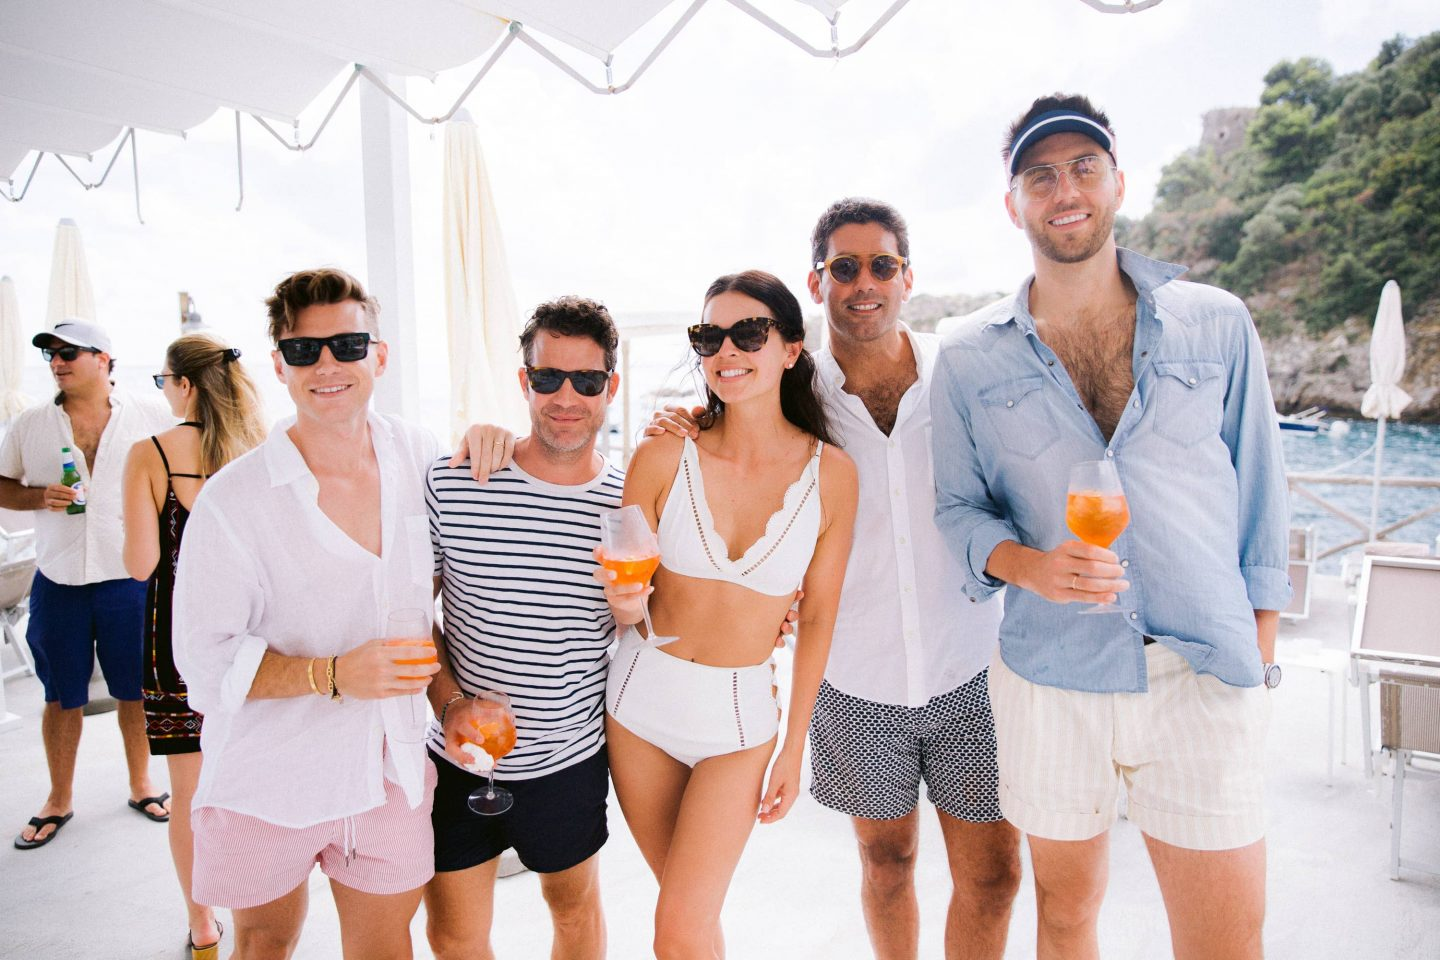 Bride and groom with guests and aperol spritzes during beach party near Conca del Sogno beach club at this Amalfi Coast wedding weekend held Lo Scoglio | Photo by Allan Zepeda